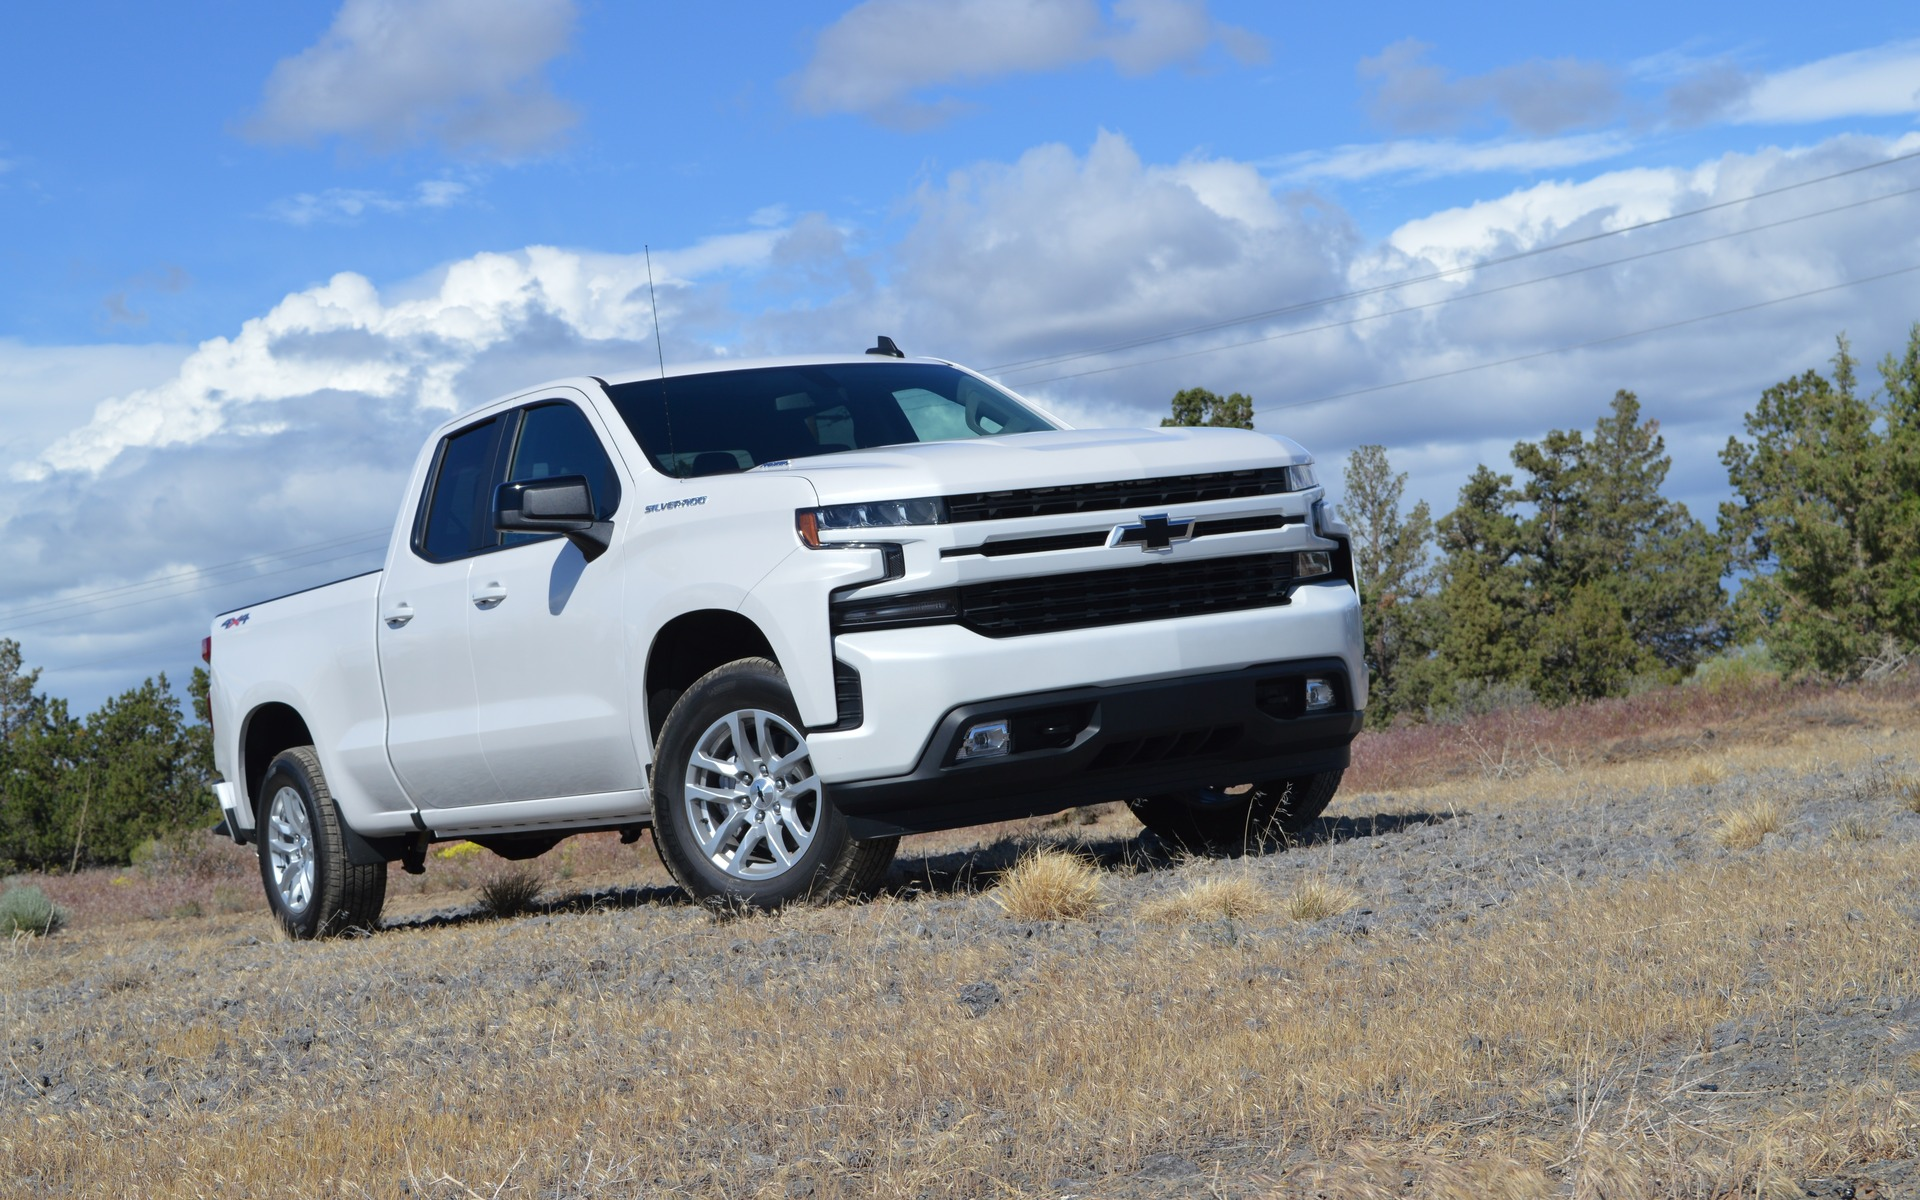 2020 Chevrolet Silverado 1500 Duramax The Diesel Is Back The Car Guide